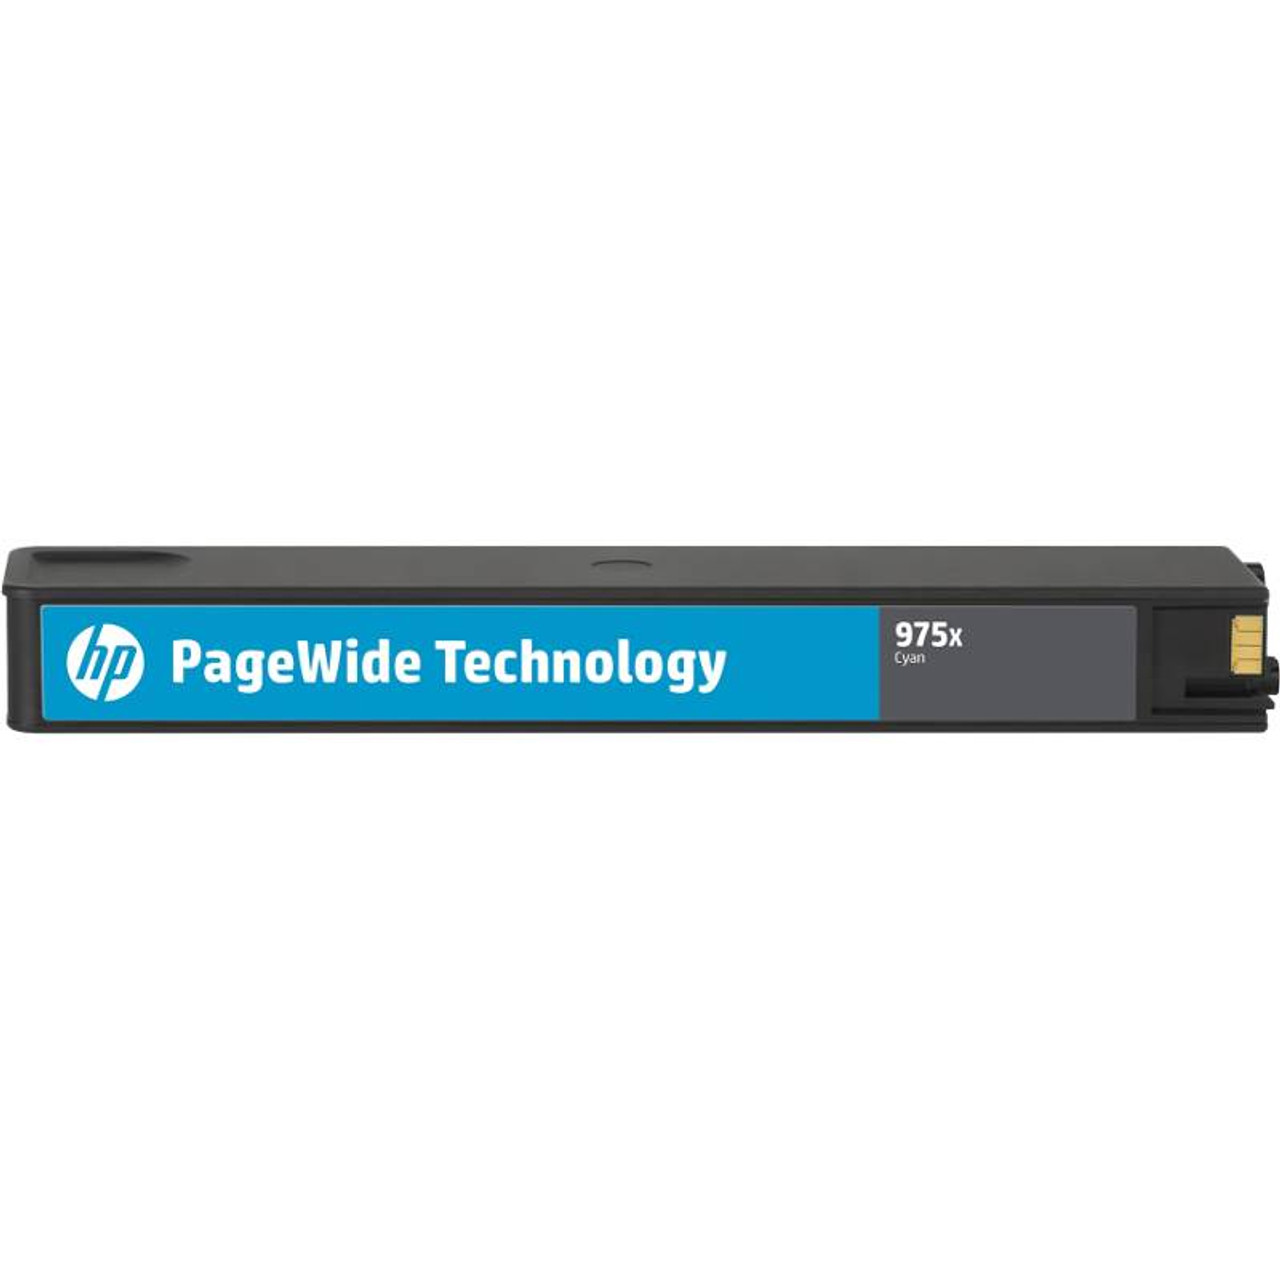 Image for HP 975X High Yield Cyan Original PageWide Cartridge (L0S00AA) CX Computer Superstore